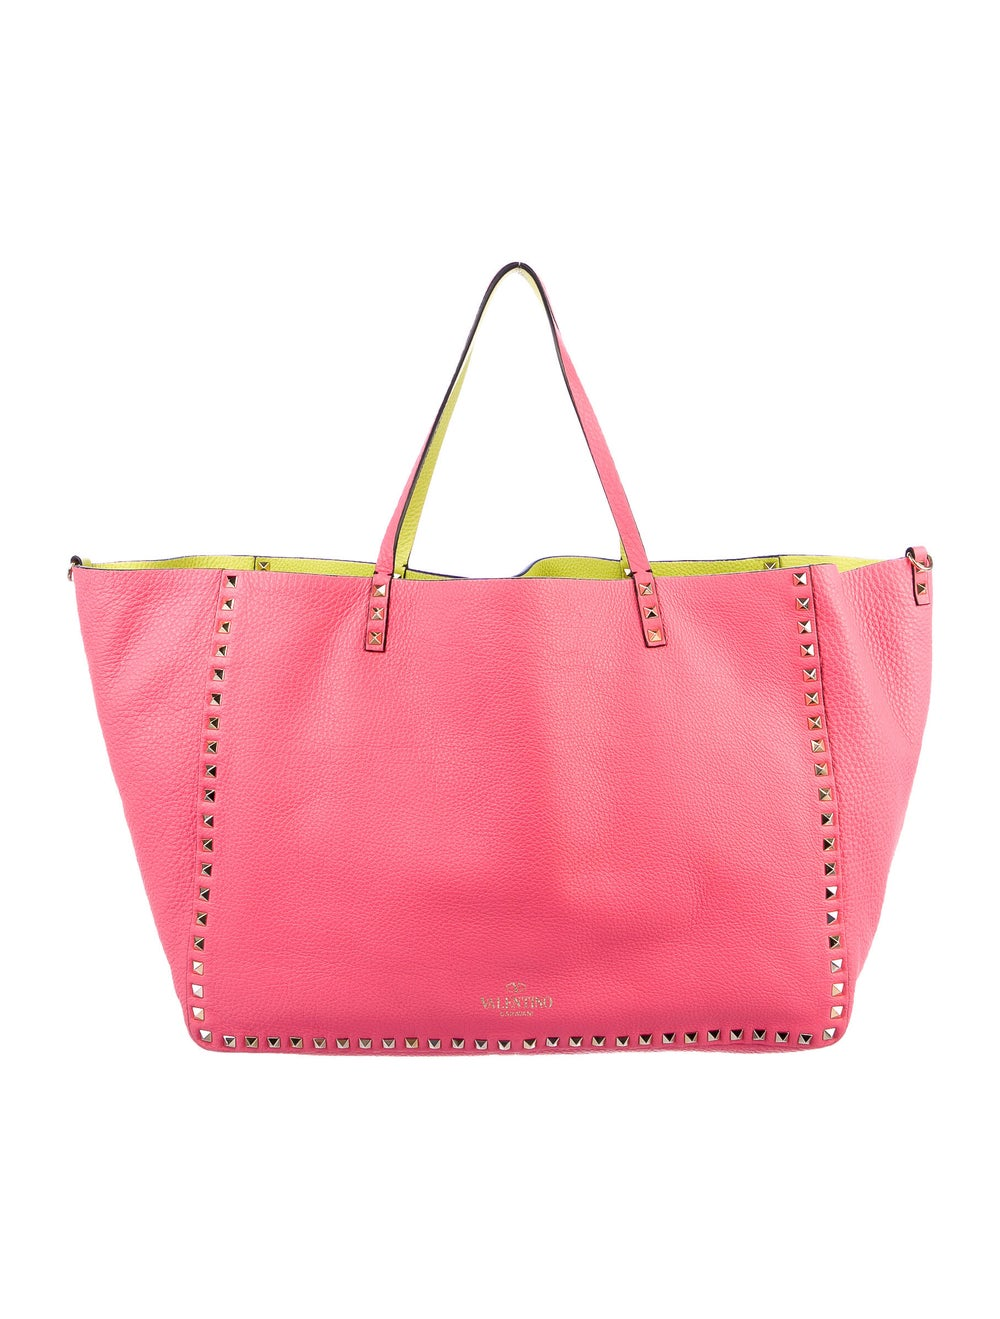 Valentino Leather Rockstud Tote Pink - image 4